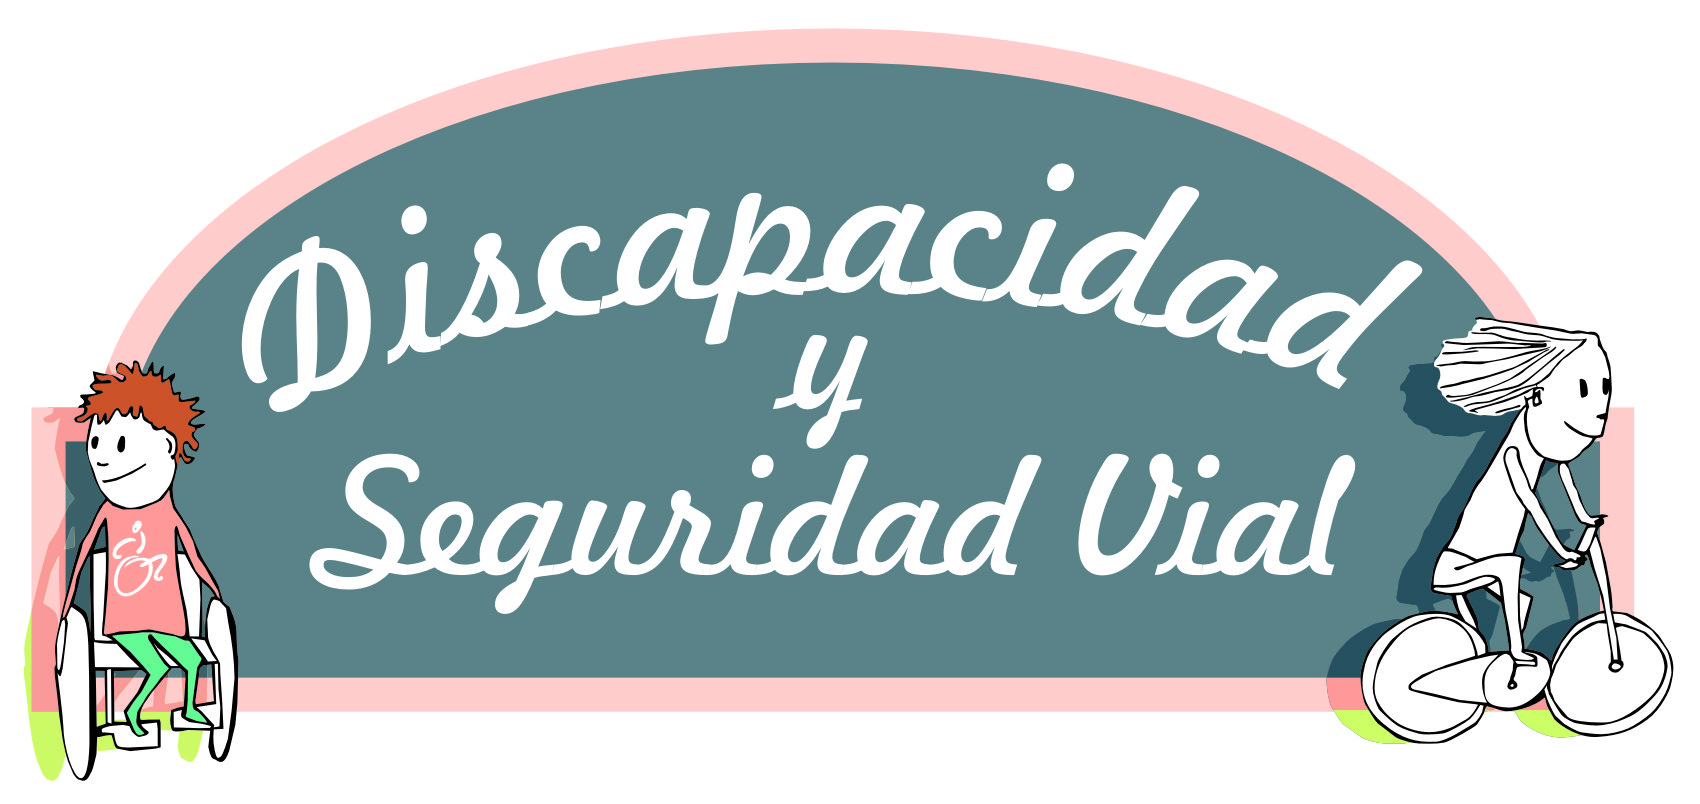 Club Willy: Discapacidad y Seguridad Vial